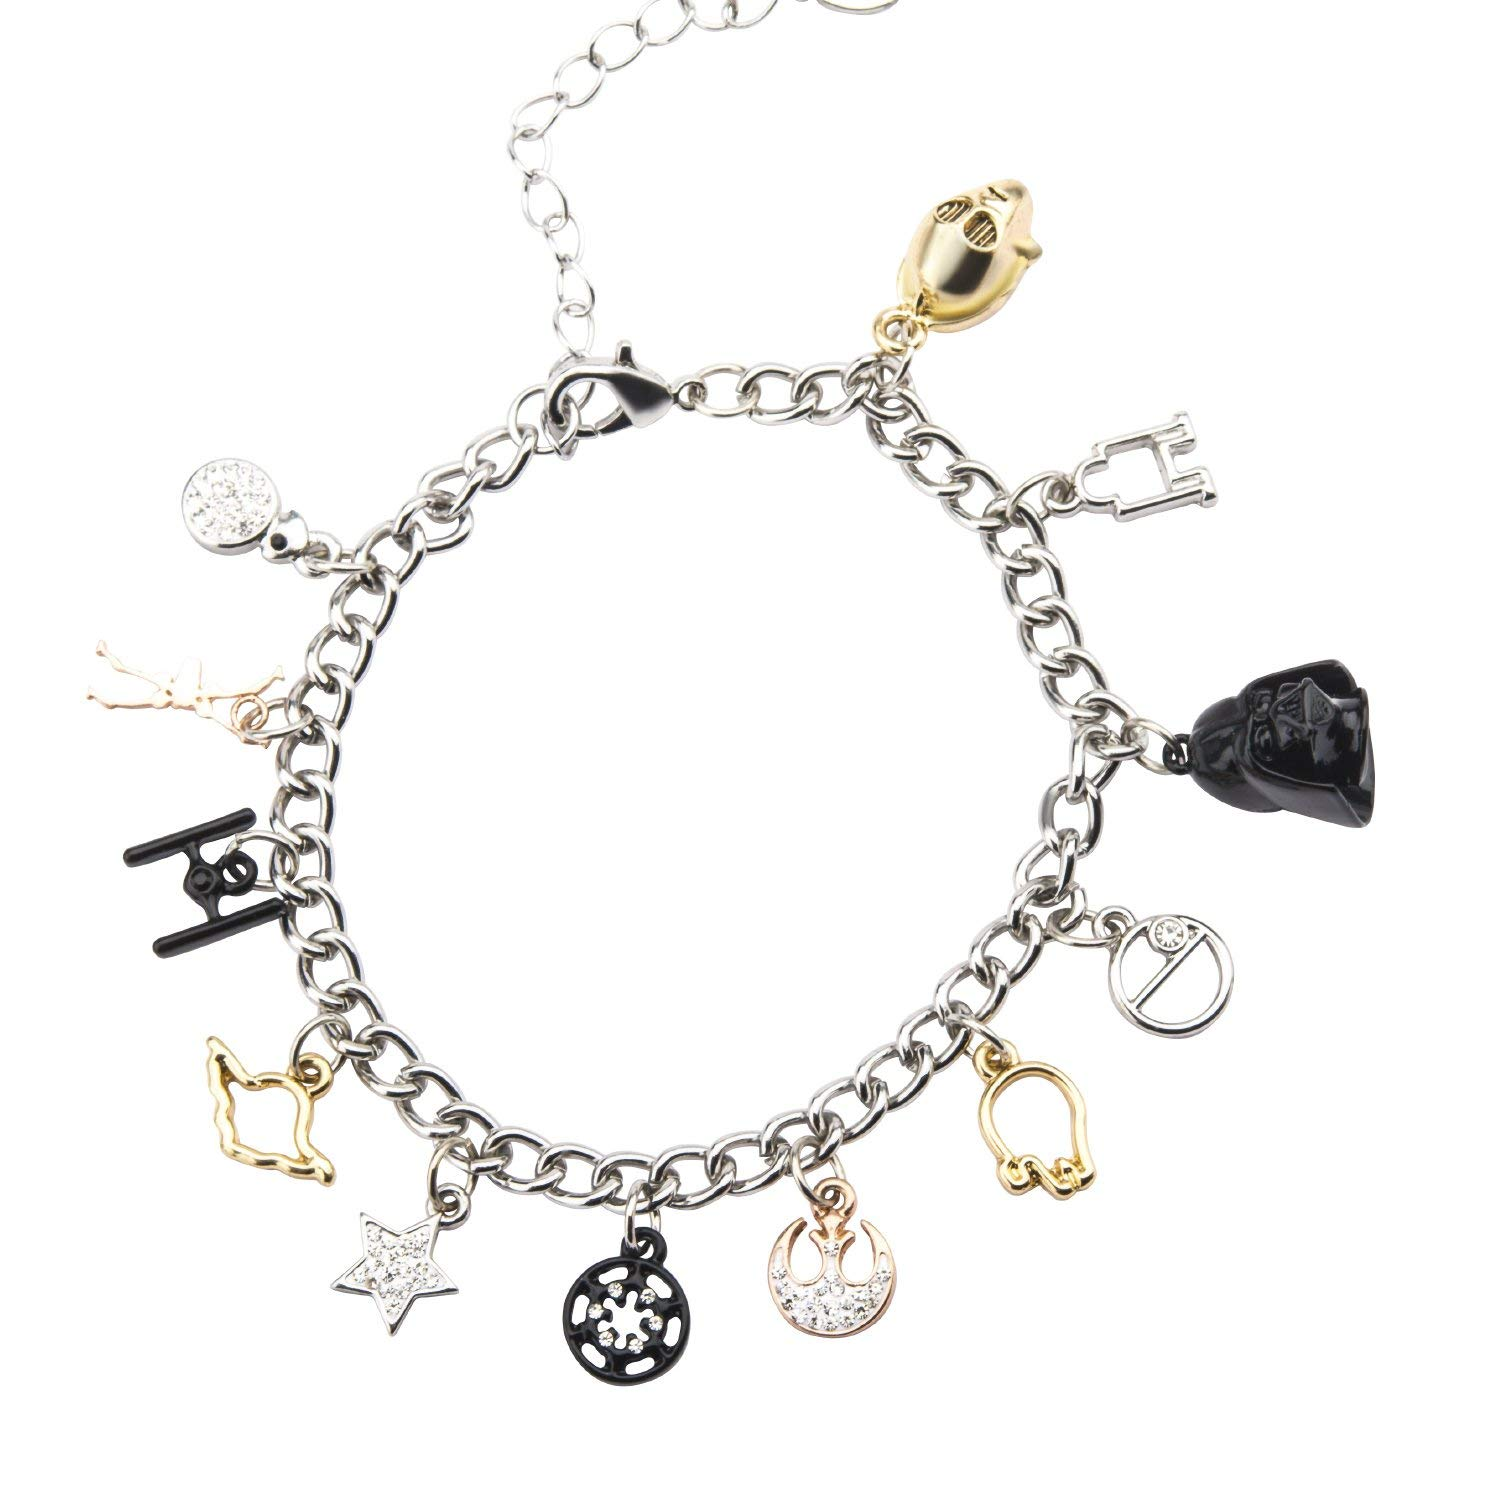 Star Wars Multi Charm Bracelet on Amazon